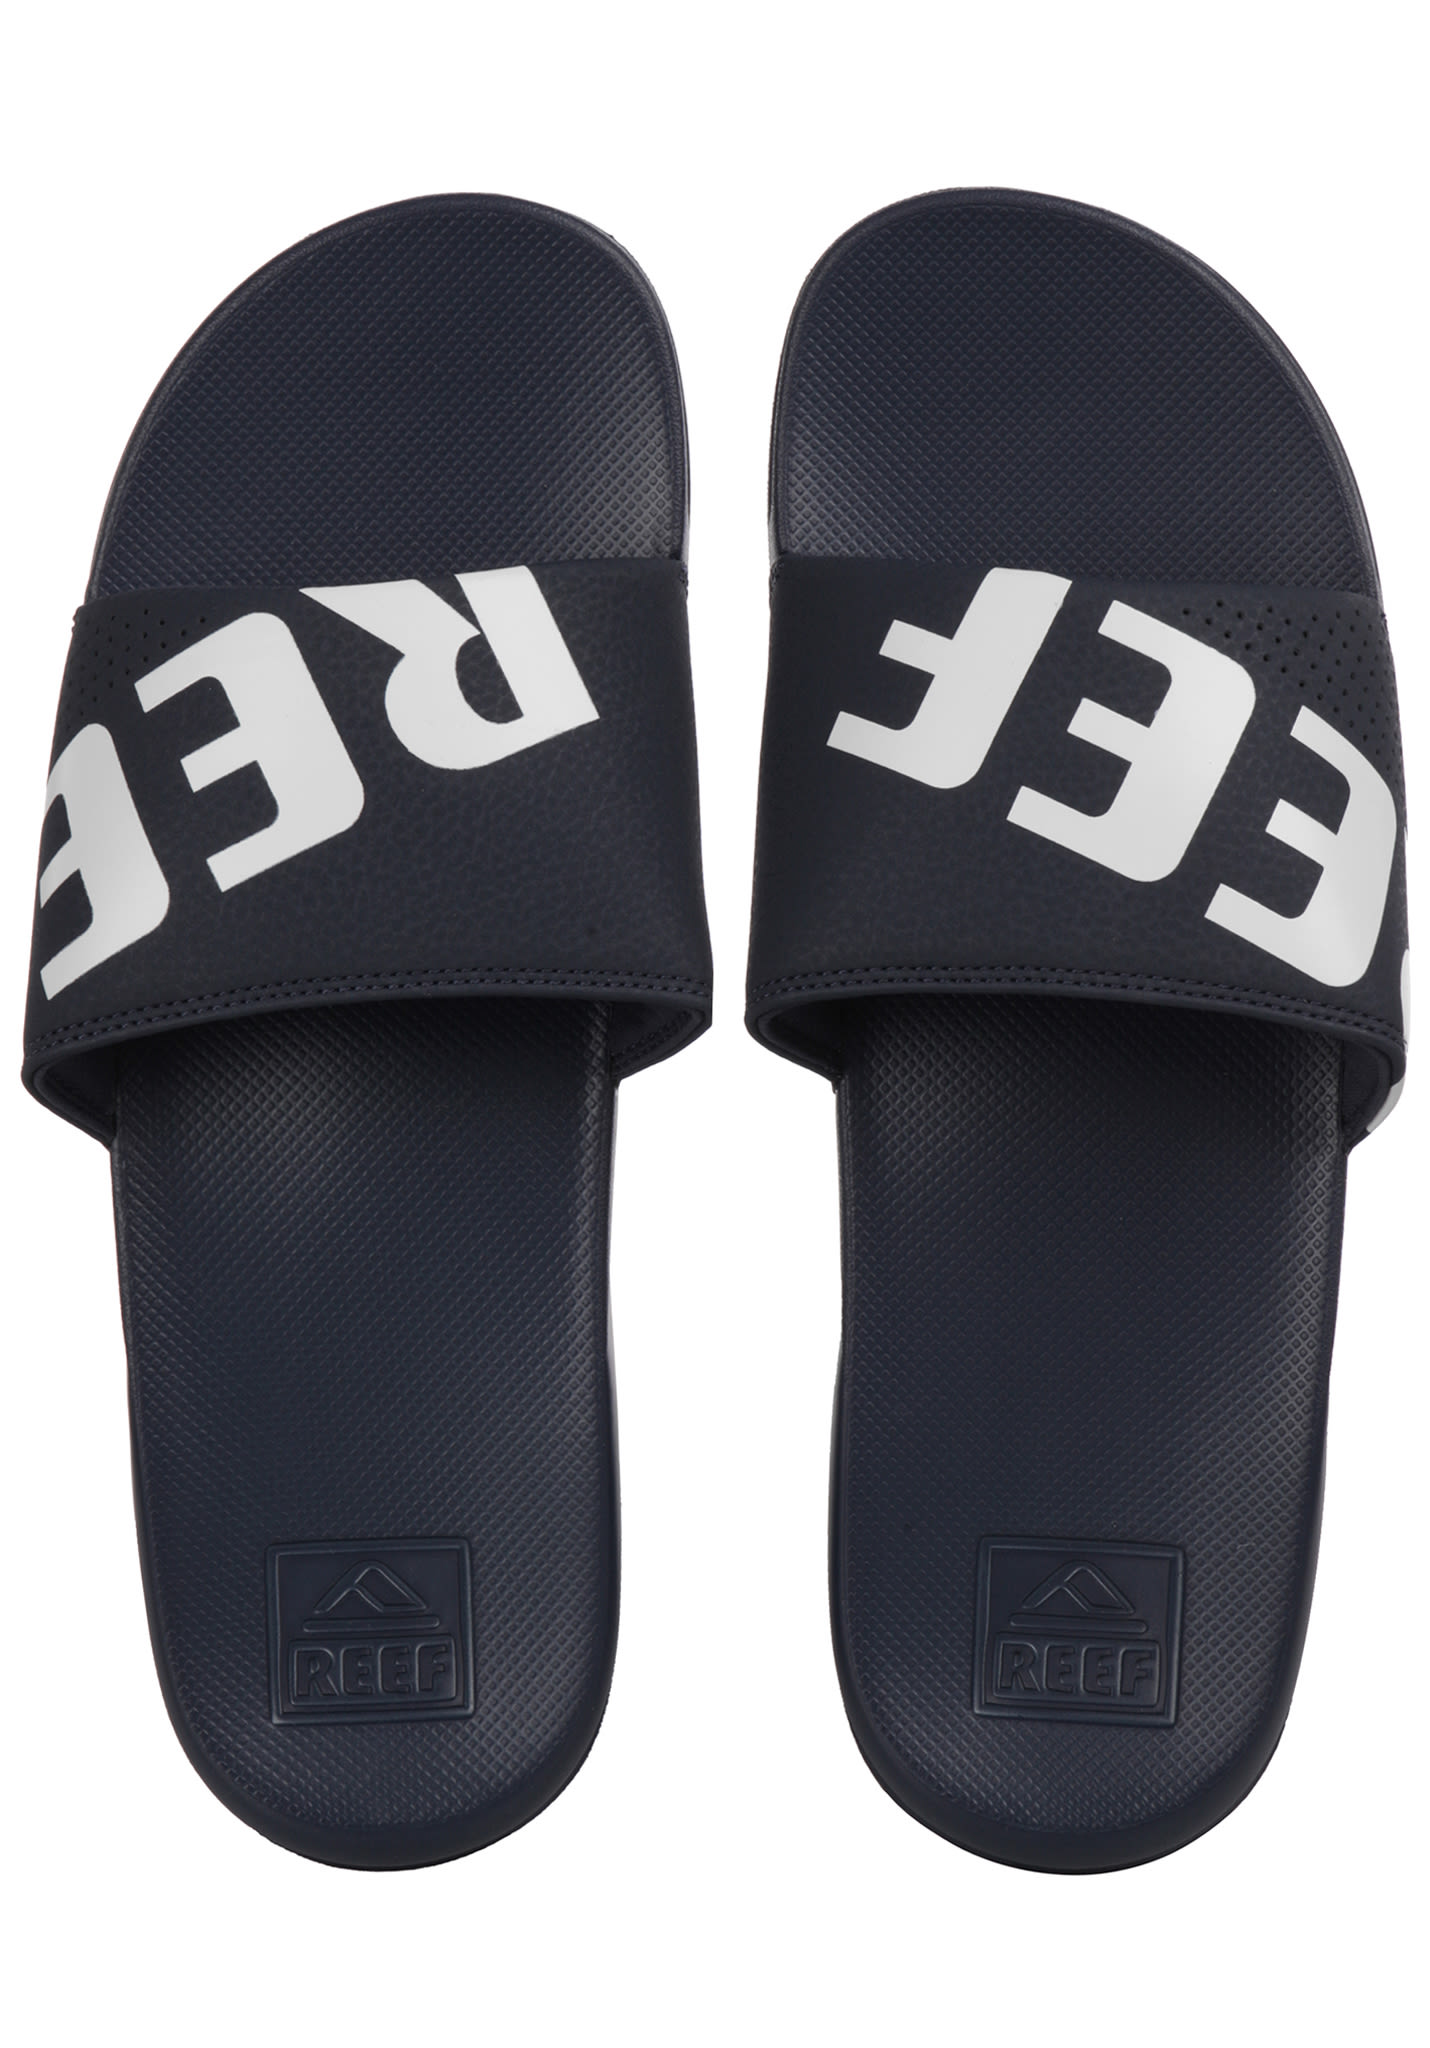 a6416e62c9cff Reef One Slide - Sandals for Men - Blue - Planet Sports